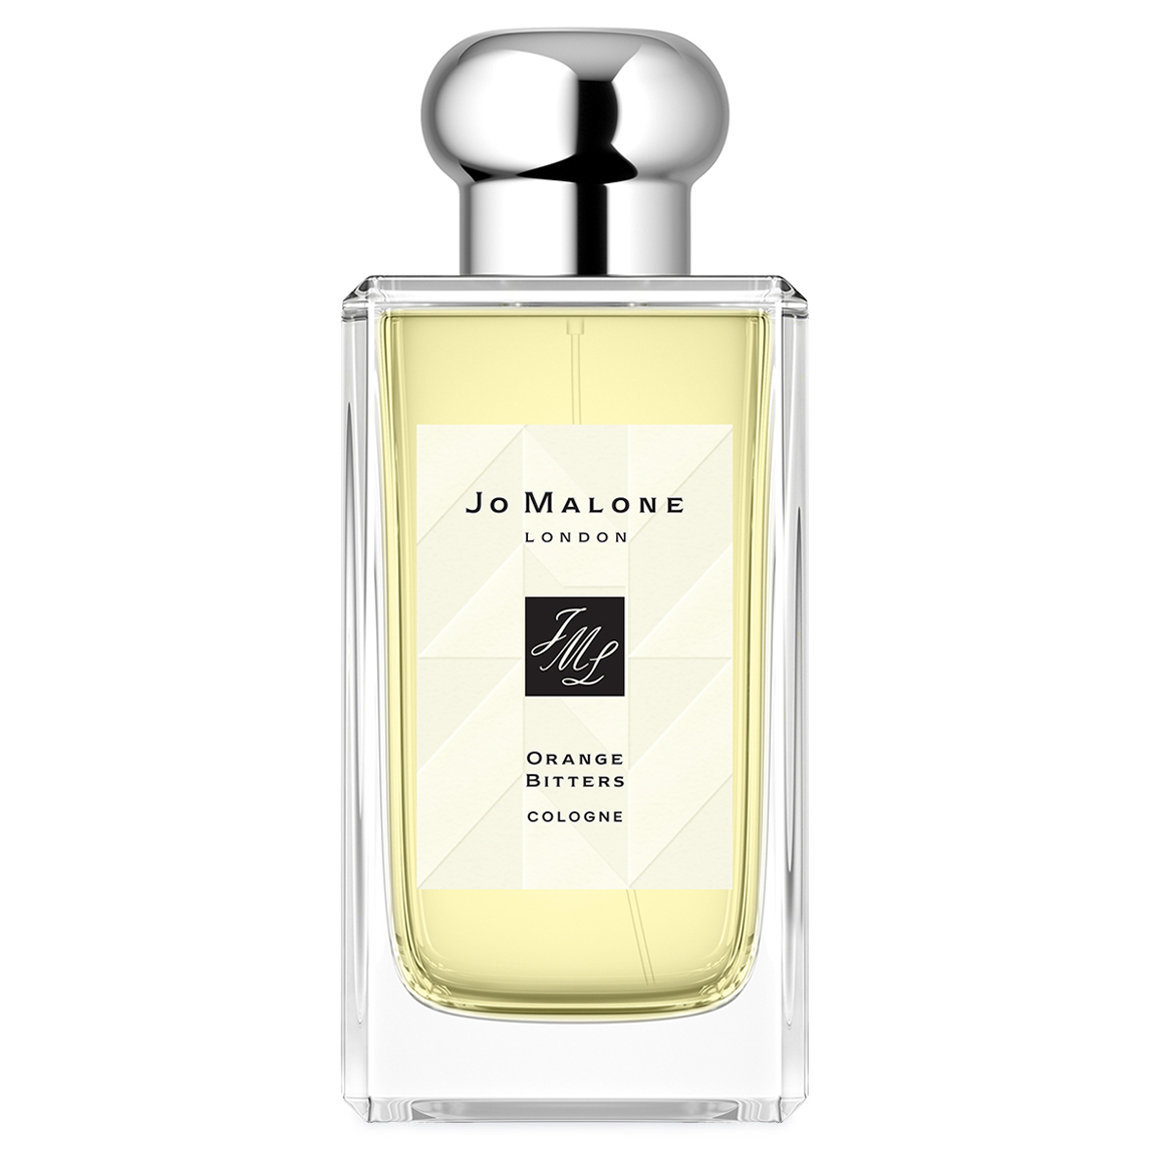 Jo Malone London Orange Bitters Cologne 100 ml alternative view 1 - product swatch.